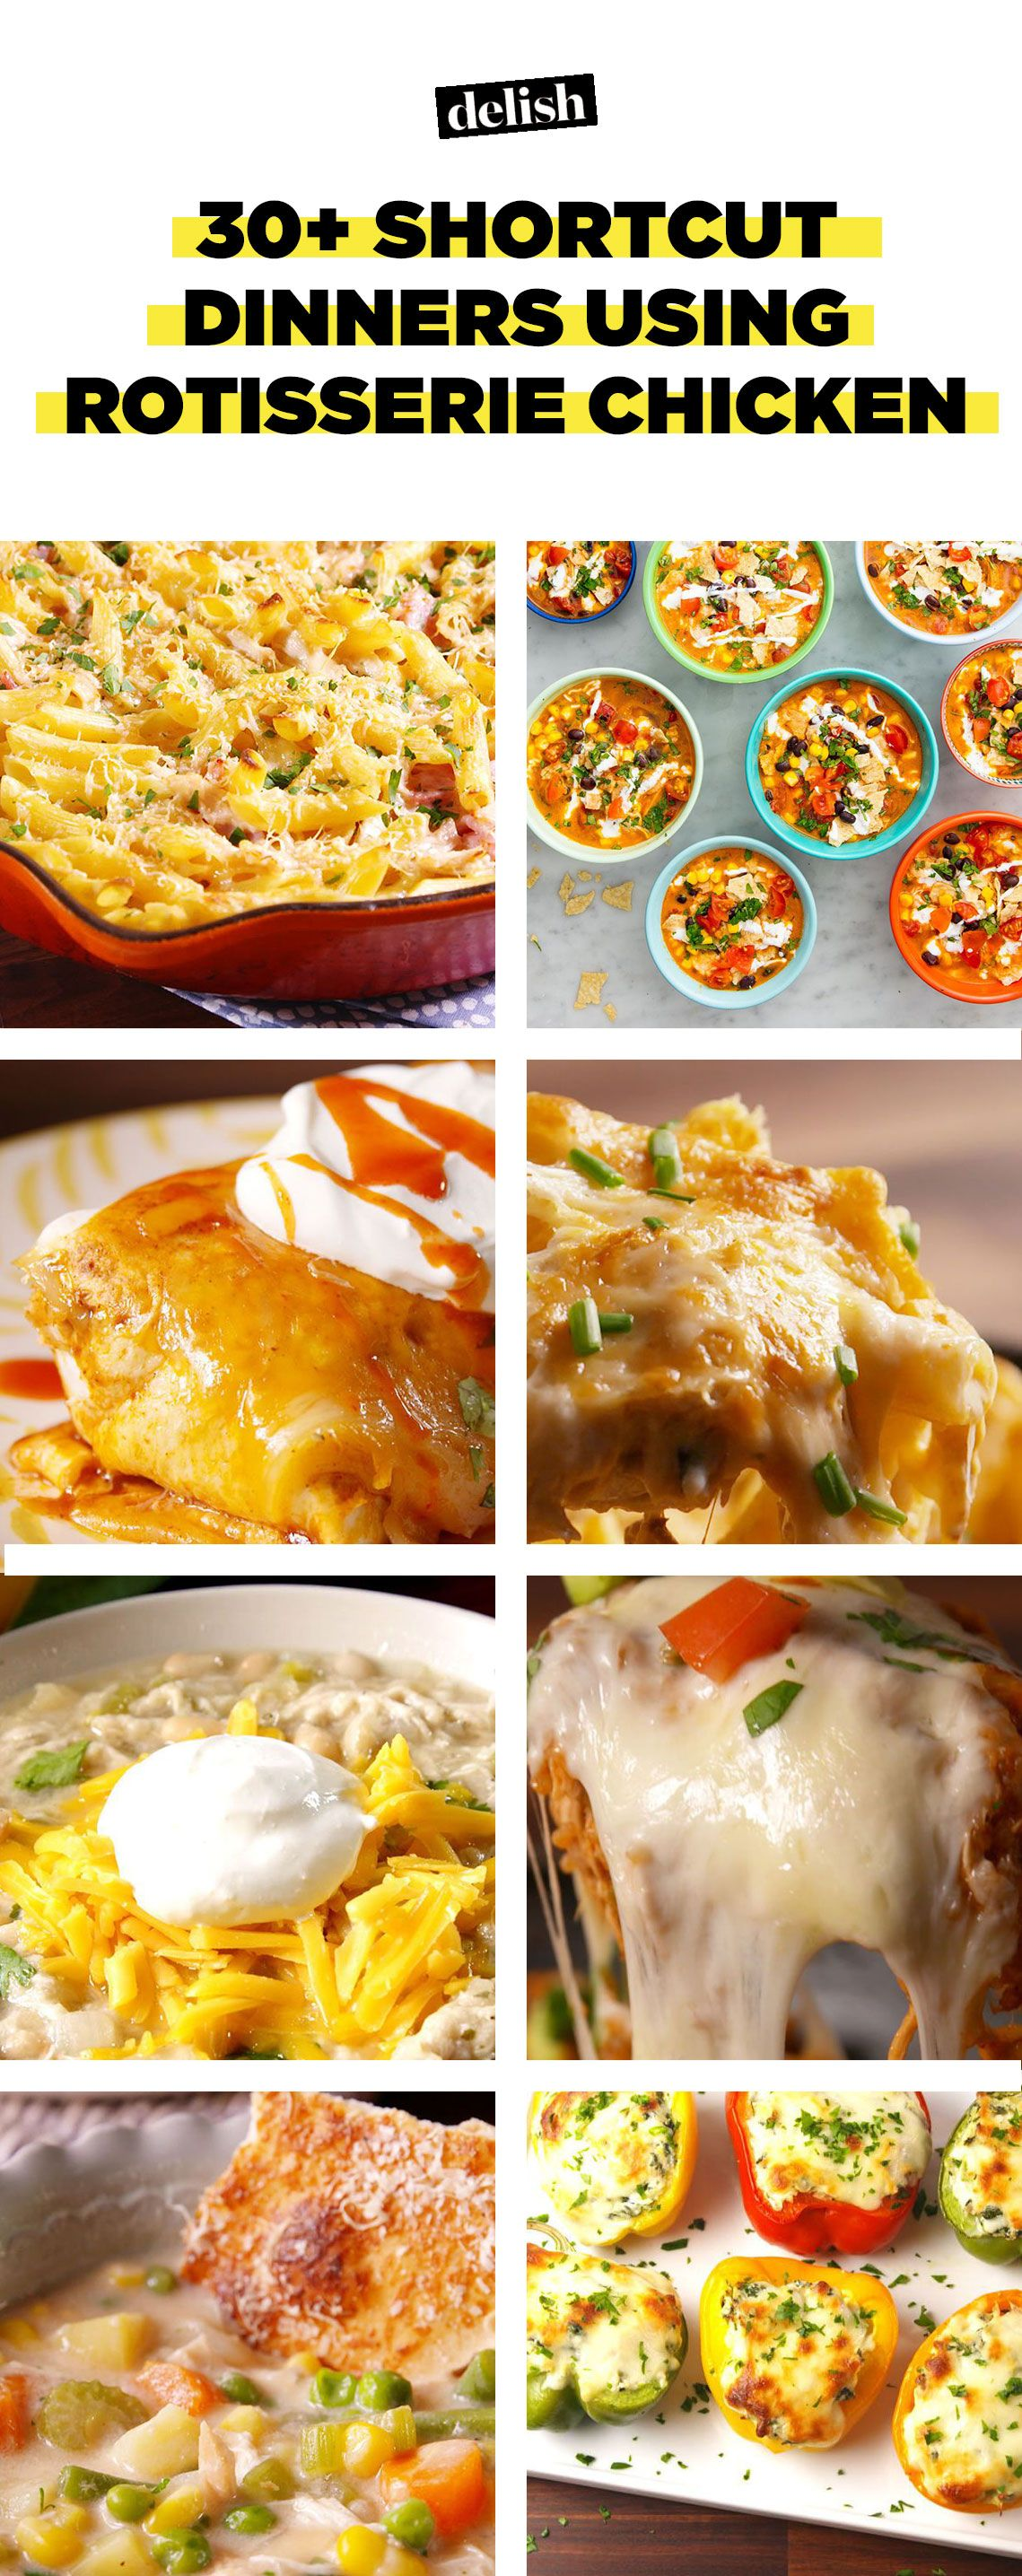 19 recipes using store bought rotisserie chicken leftover chicken 19 recipes using store bought rotisserie chicken leftover chicken recipes delish forumfinder Choice Image